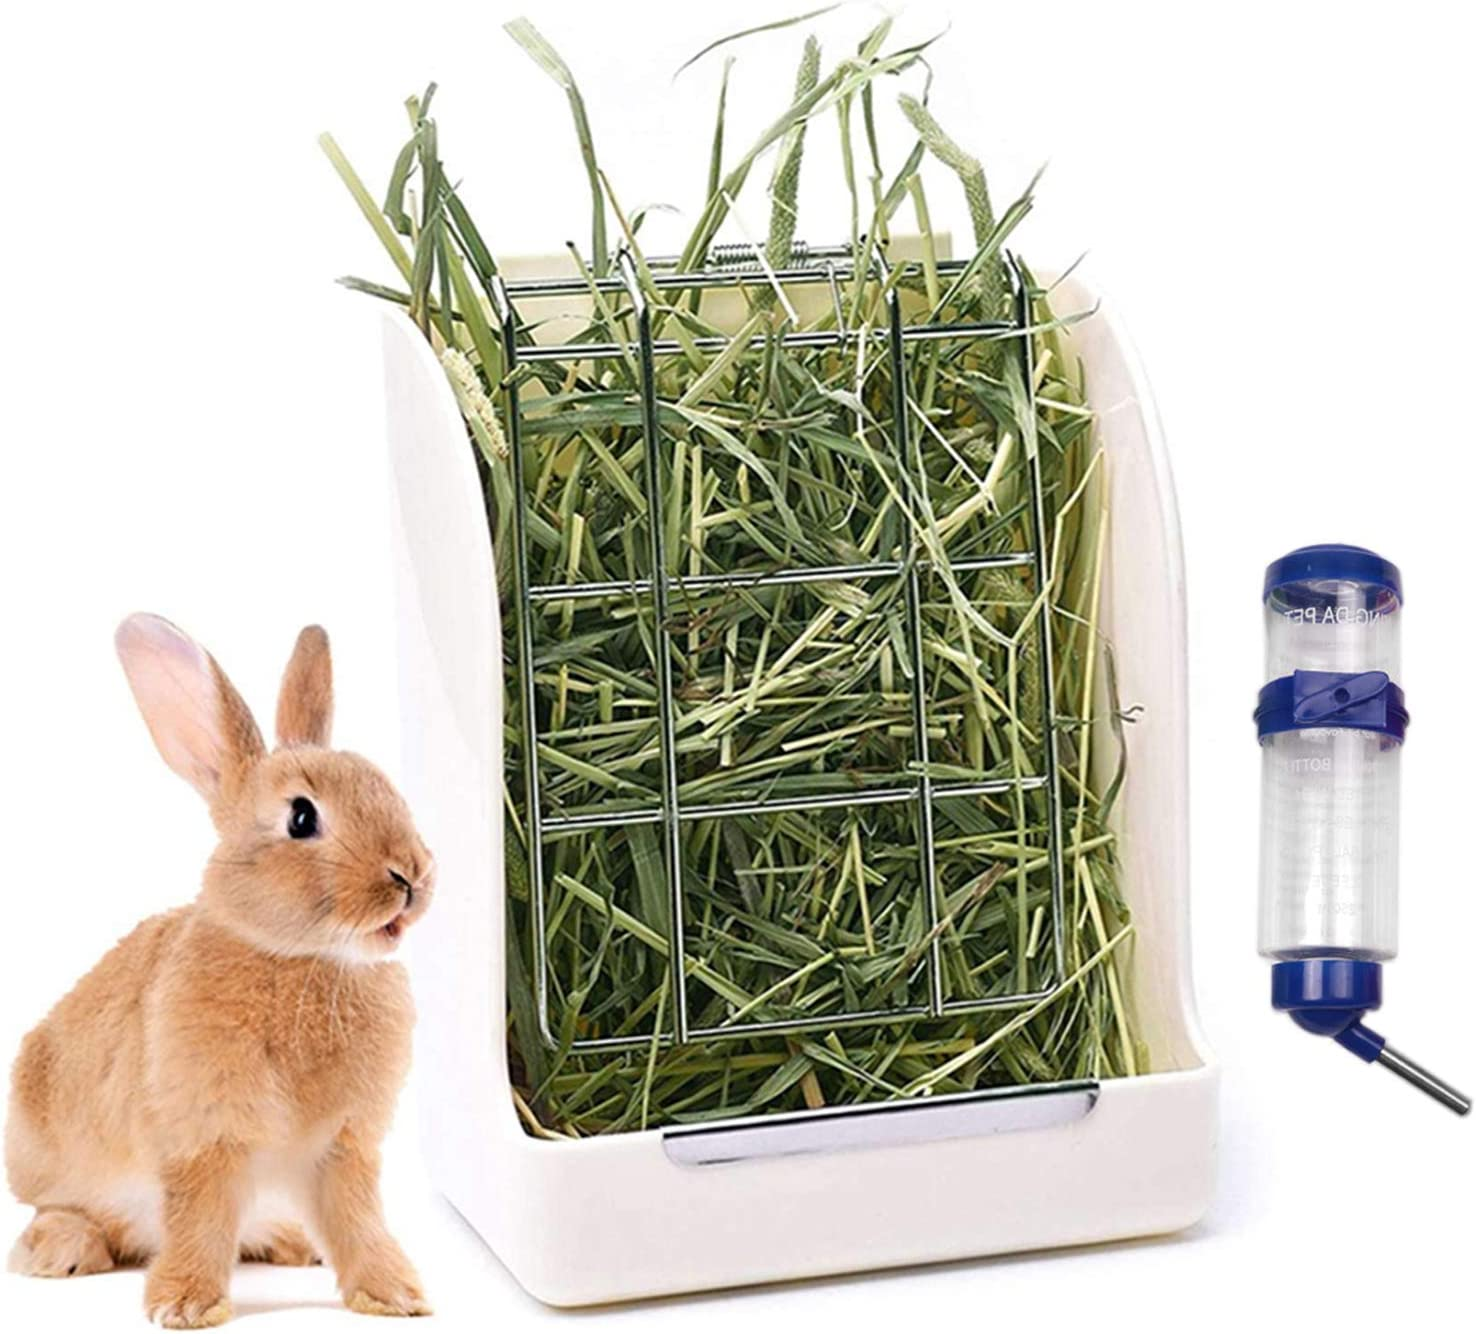 Rabbit Hay Feeders Rack,Bunny Water Bottles Dispenser,Hay Food Bin, 2 in 1 Feeder Bowls Double for Grass/Food for Small Animal Supplies Rabbit Chinchillas Guinea Pig Hamsters